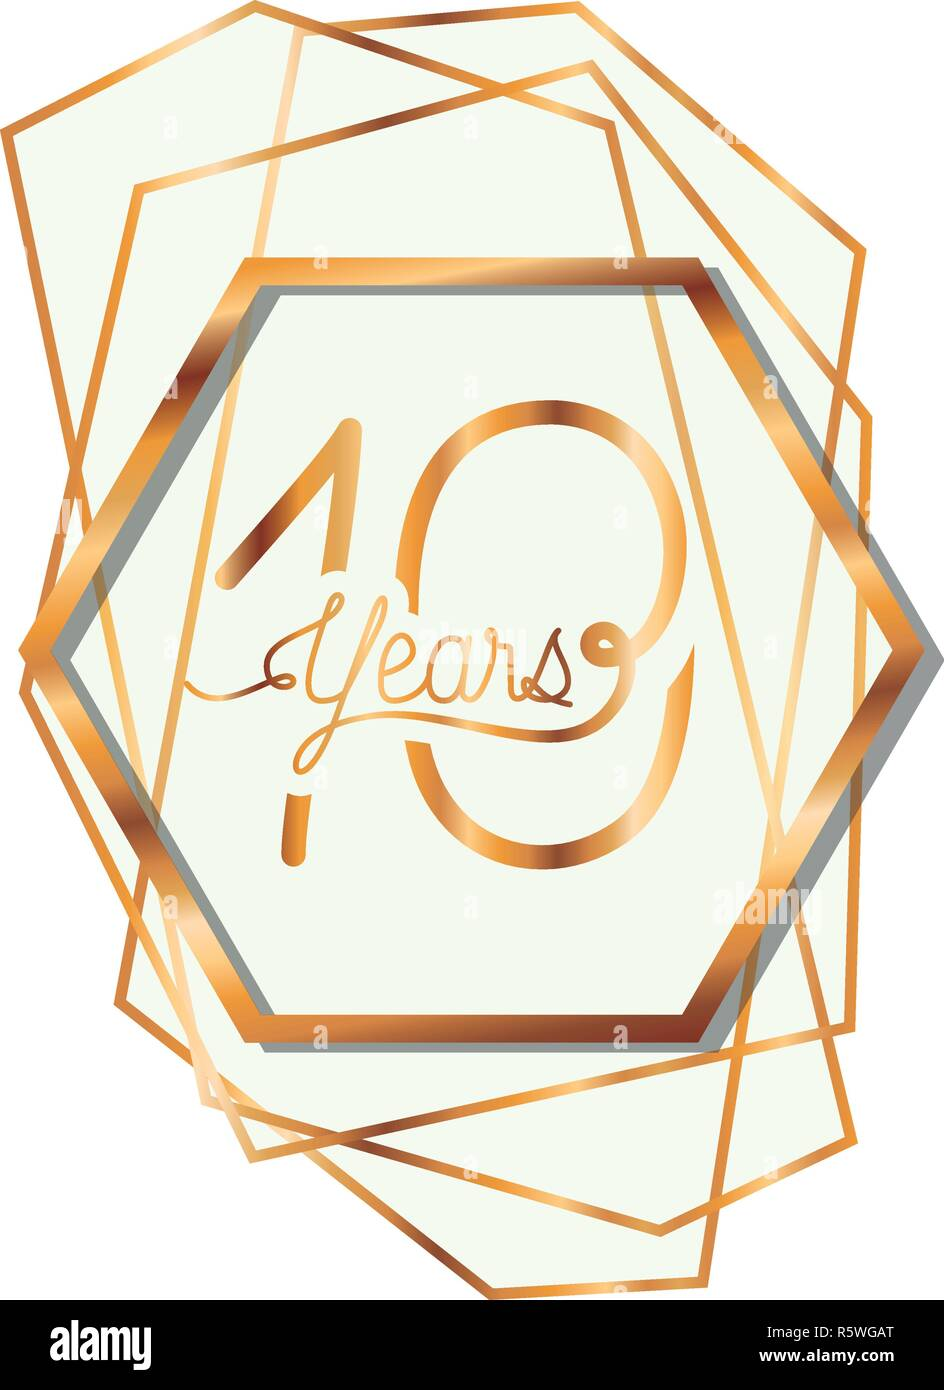 number 10 for anniversary celebration card icon - Stock Vector